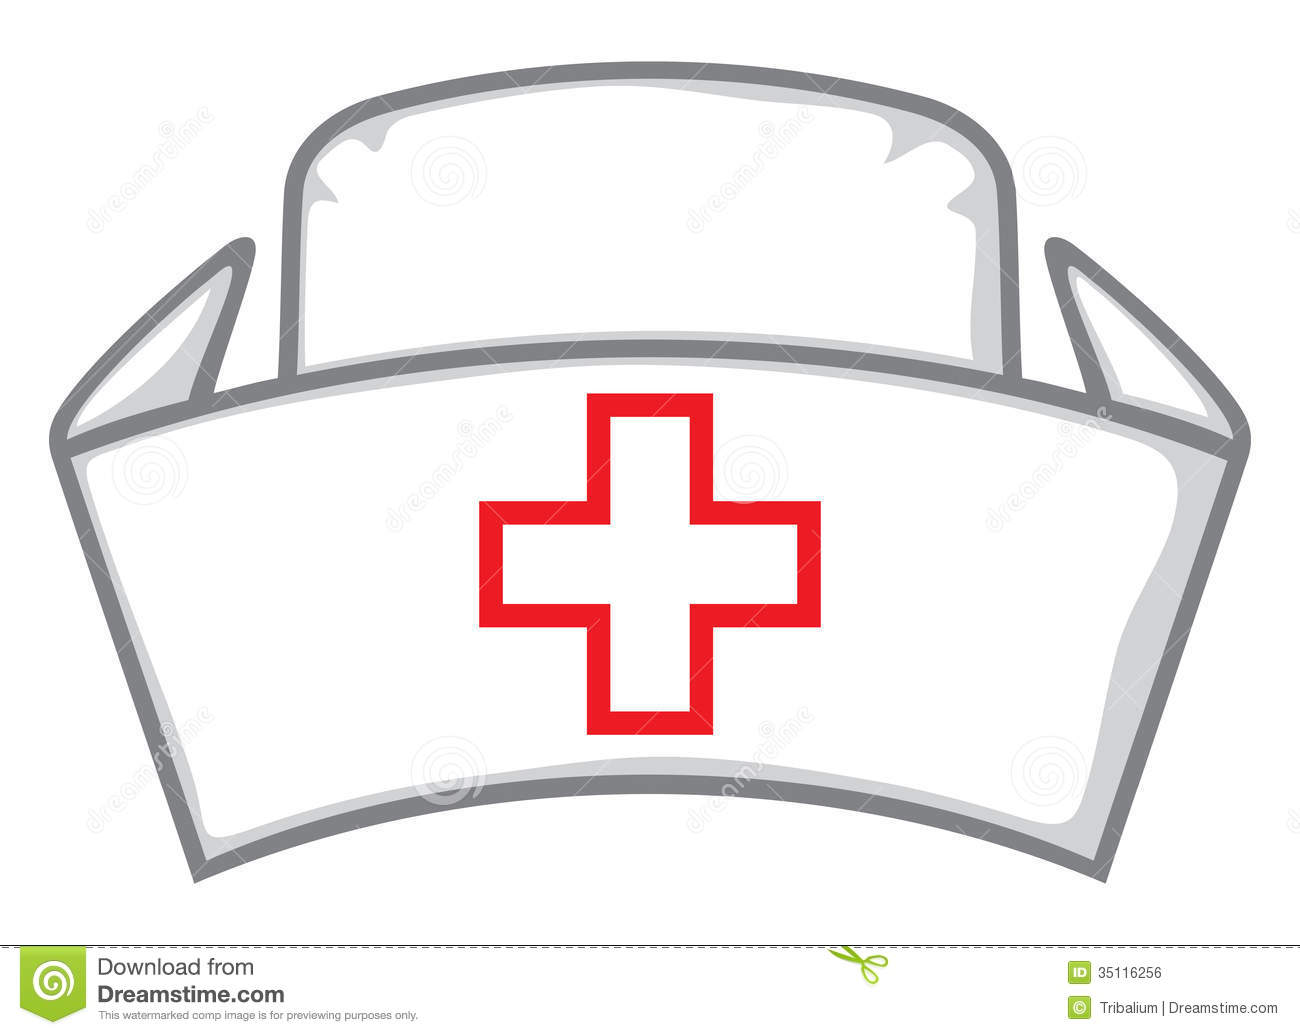 Nurse practitioner clipart free download best nurse practitioner 1300x1035 nurse hat clip art many interesting cliparts biocorpaavc